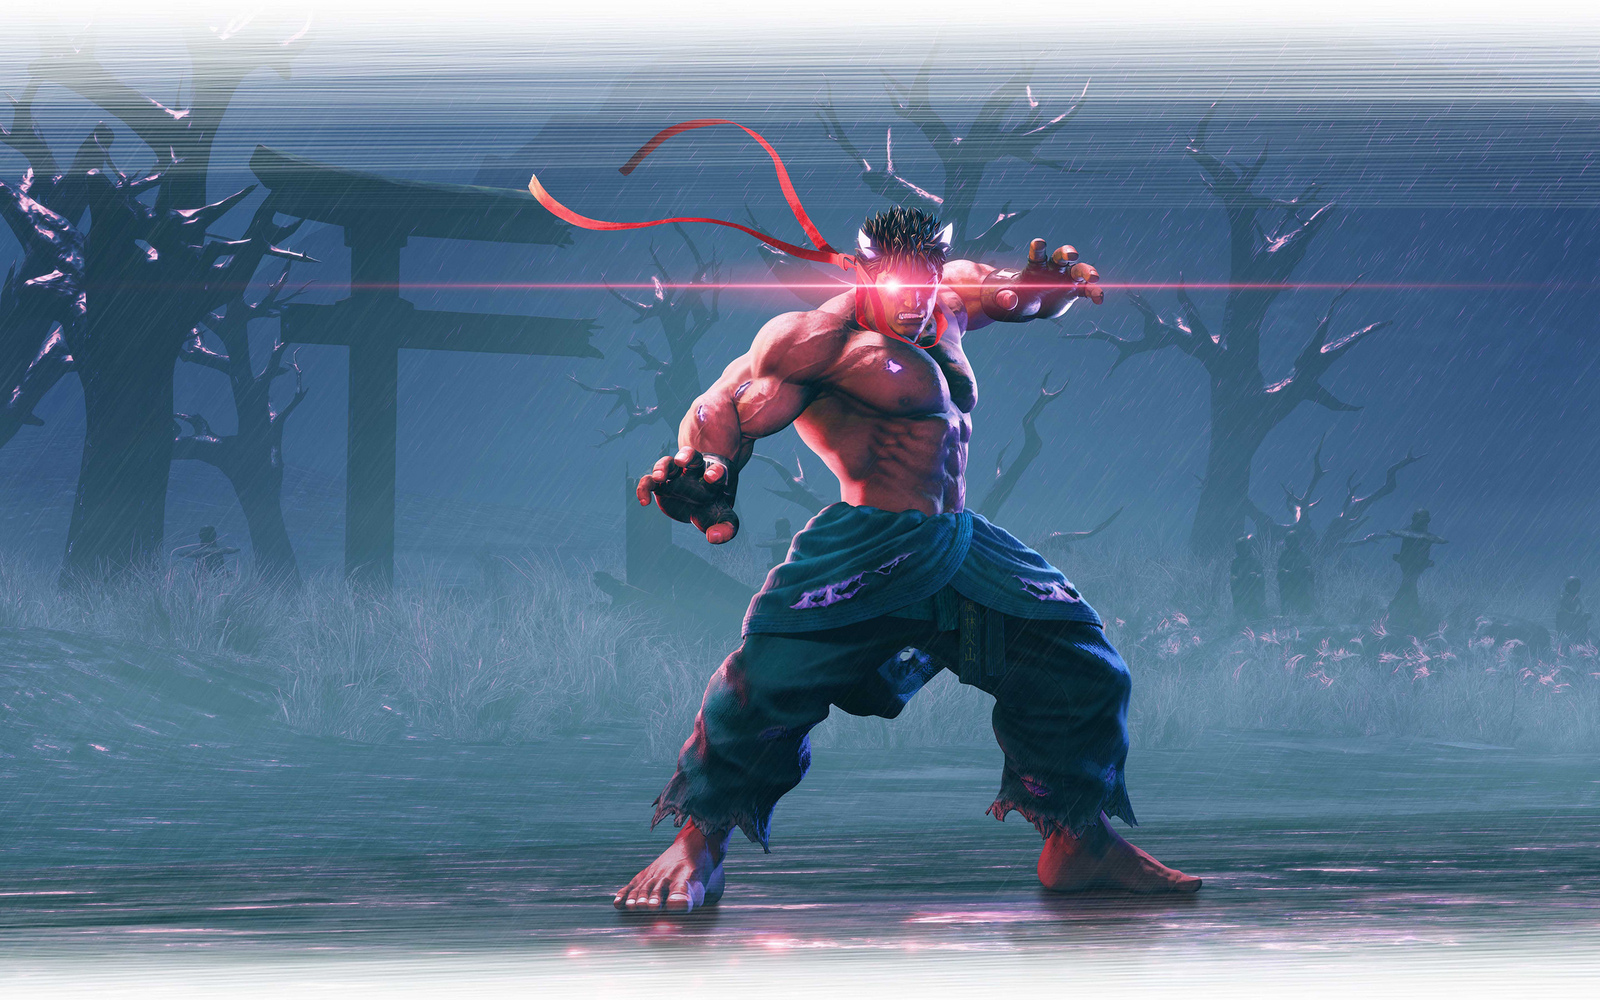 Street Fighter 5 Season Pass 4 And Title Update Is Out, Adds